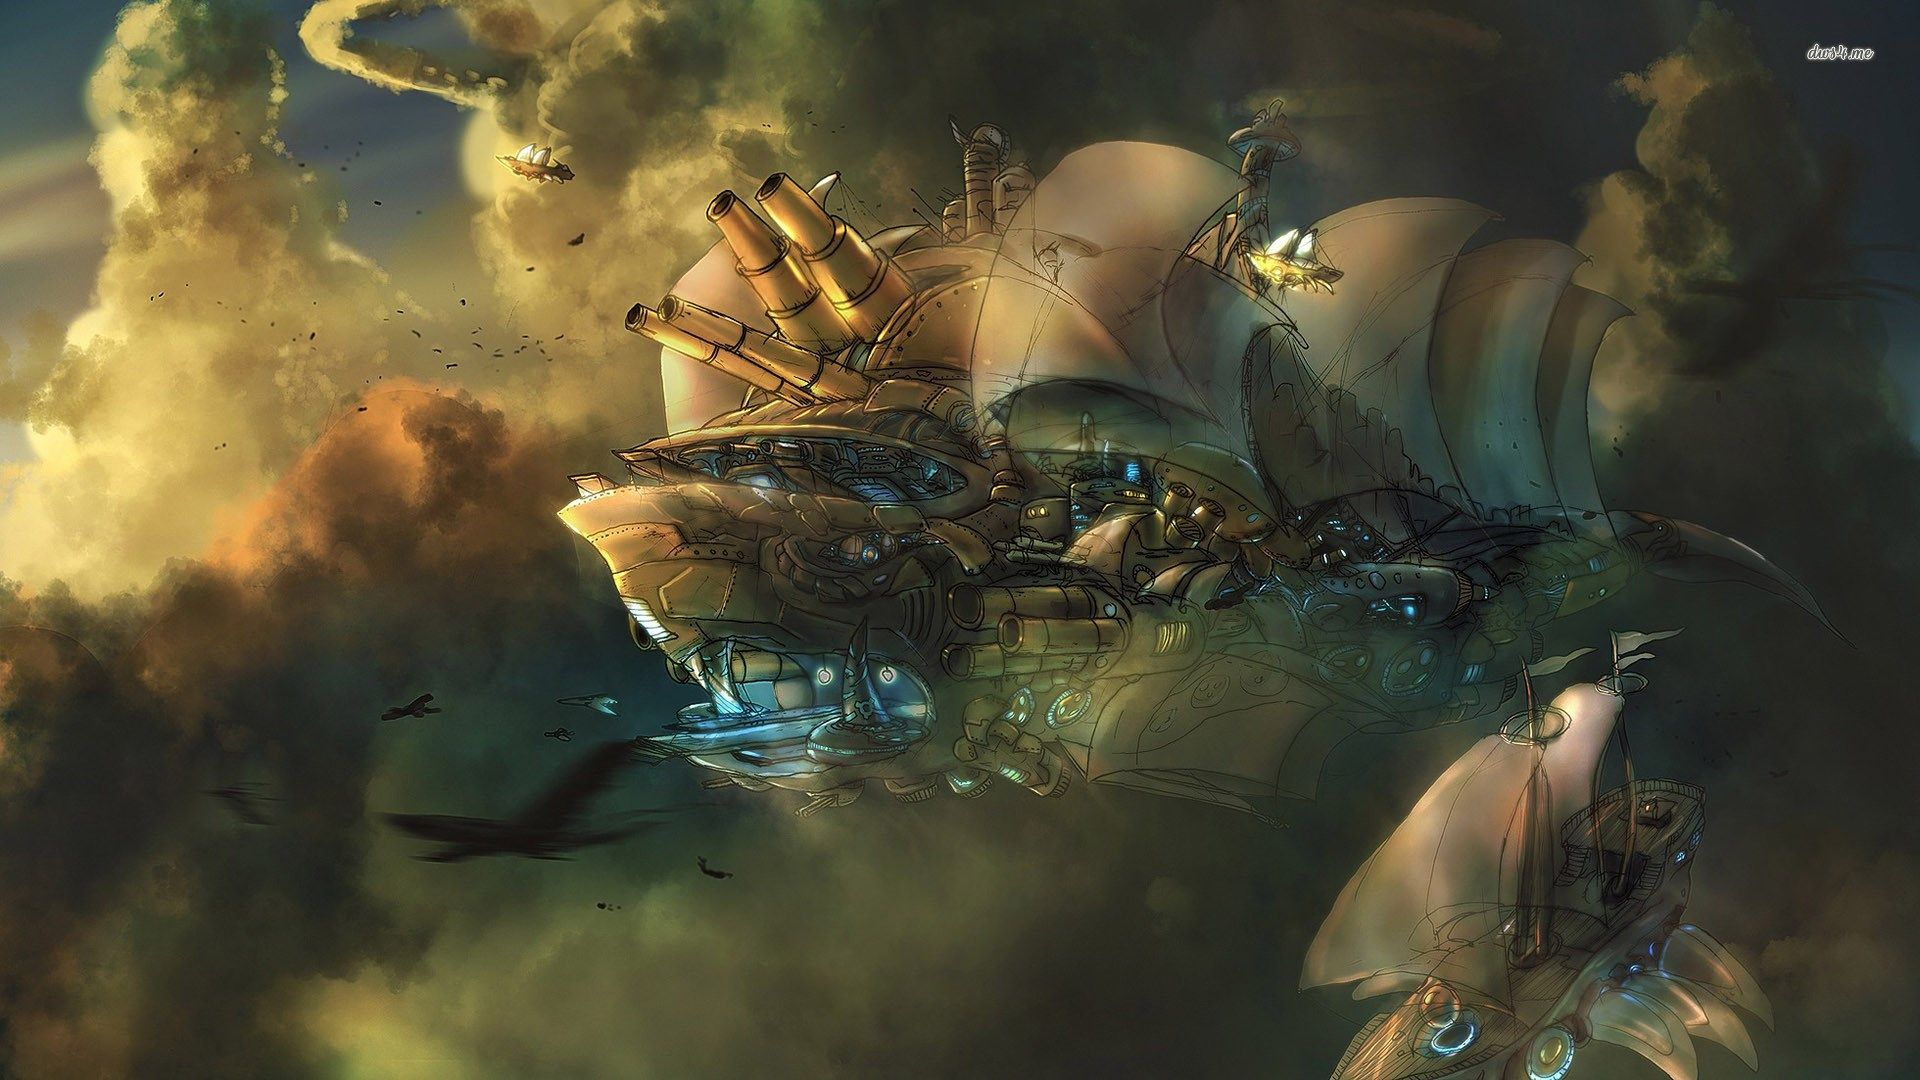 Steampunk Wallpaper Images, Walls, Pics  Steampunk Category - Wallpaperscreator